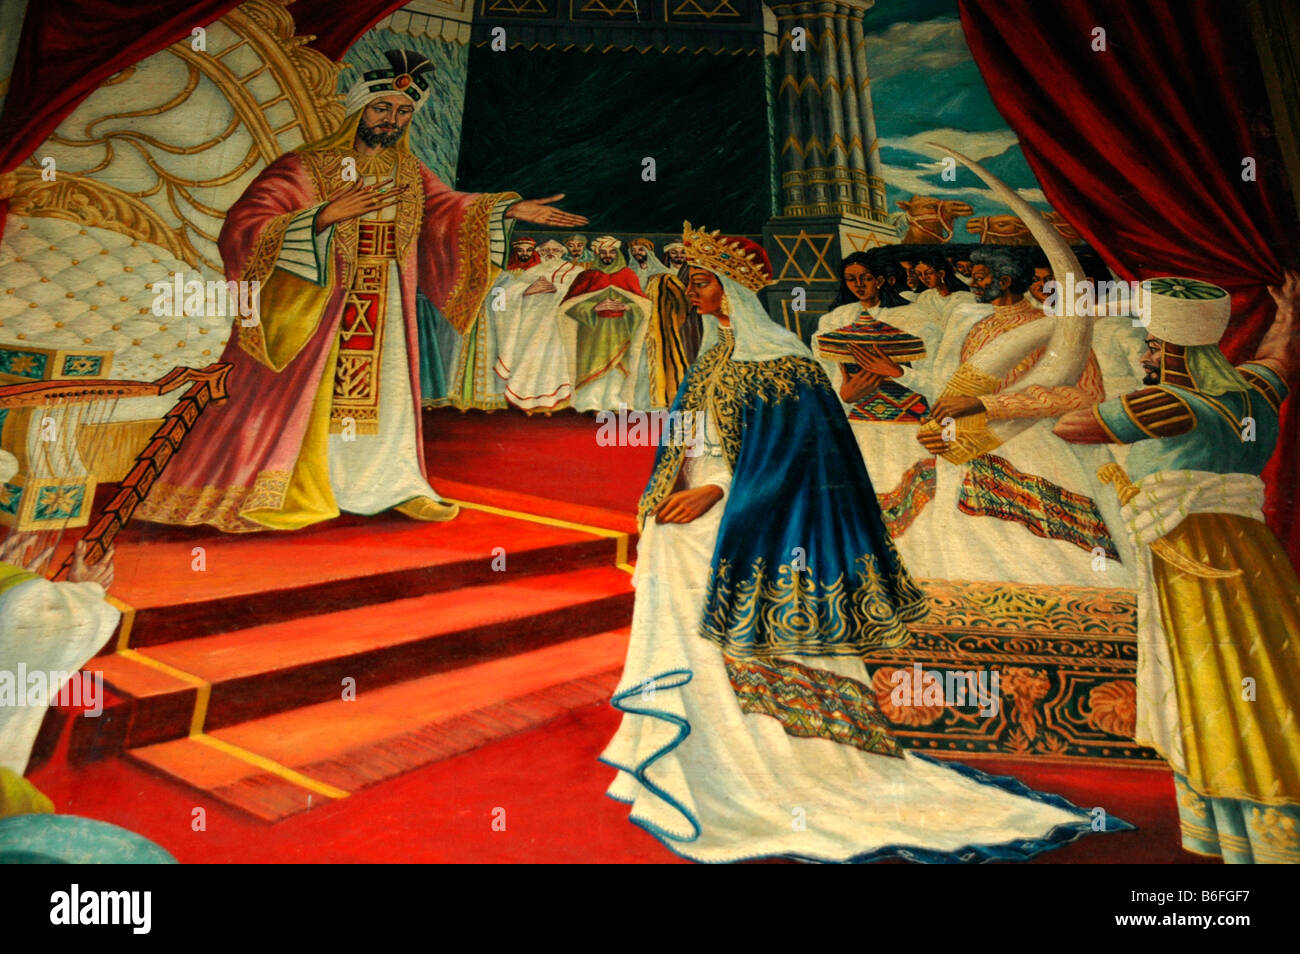 Mural art, Queen of Sheba with King Solomon, Church of St George, Addis, Adeba, Ethiopia, Africa - Stock Image